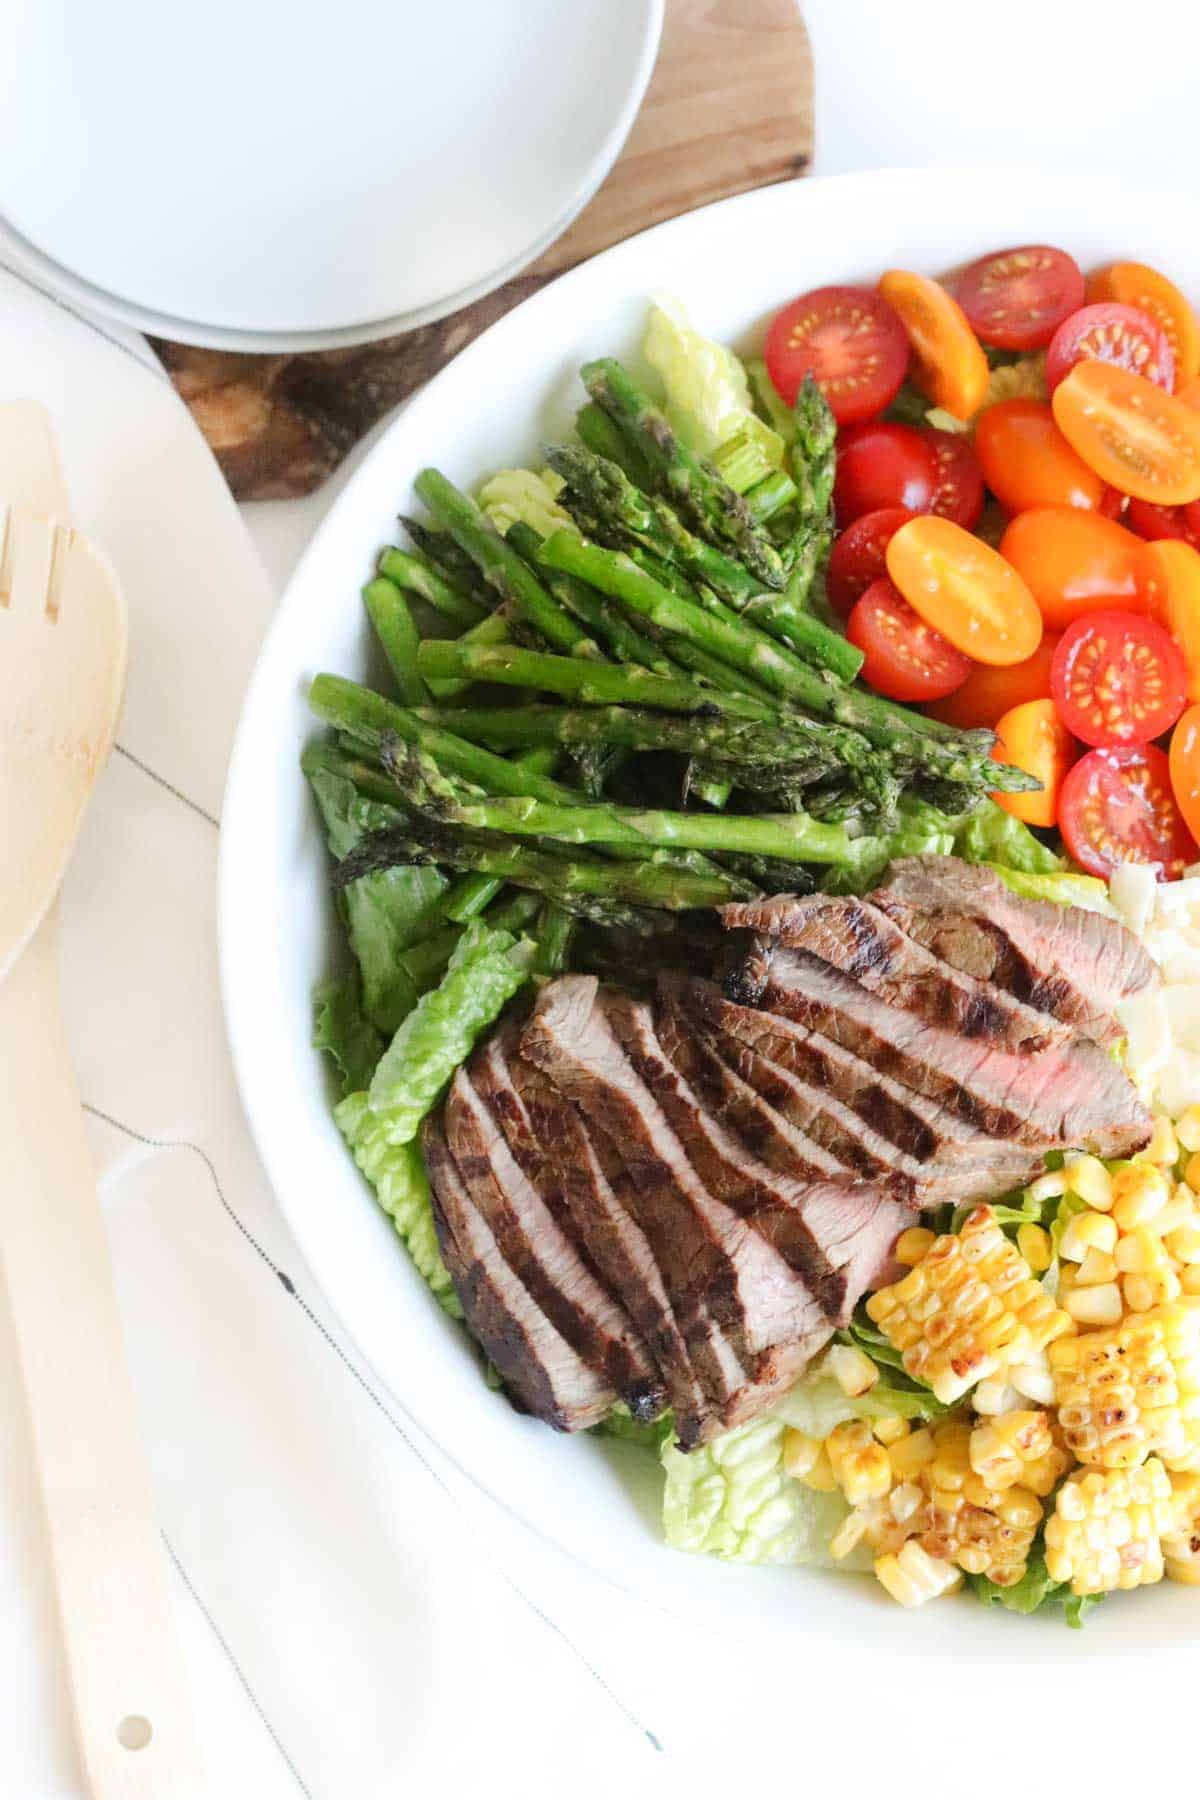 big white bowl of romaine topped with sliced grilled steak, grilled corn and asparagus, and halved tomatoes next to a stack of small white plates